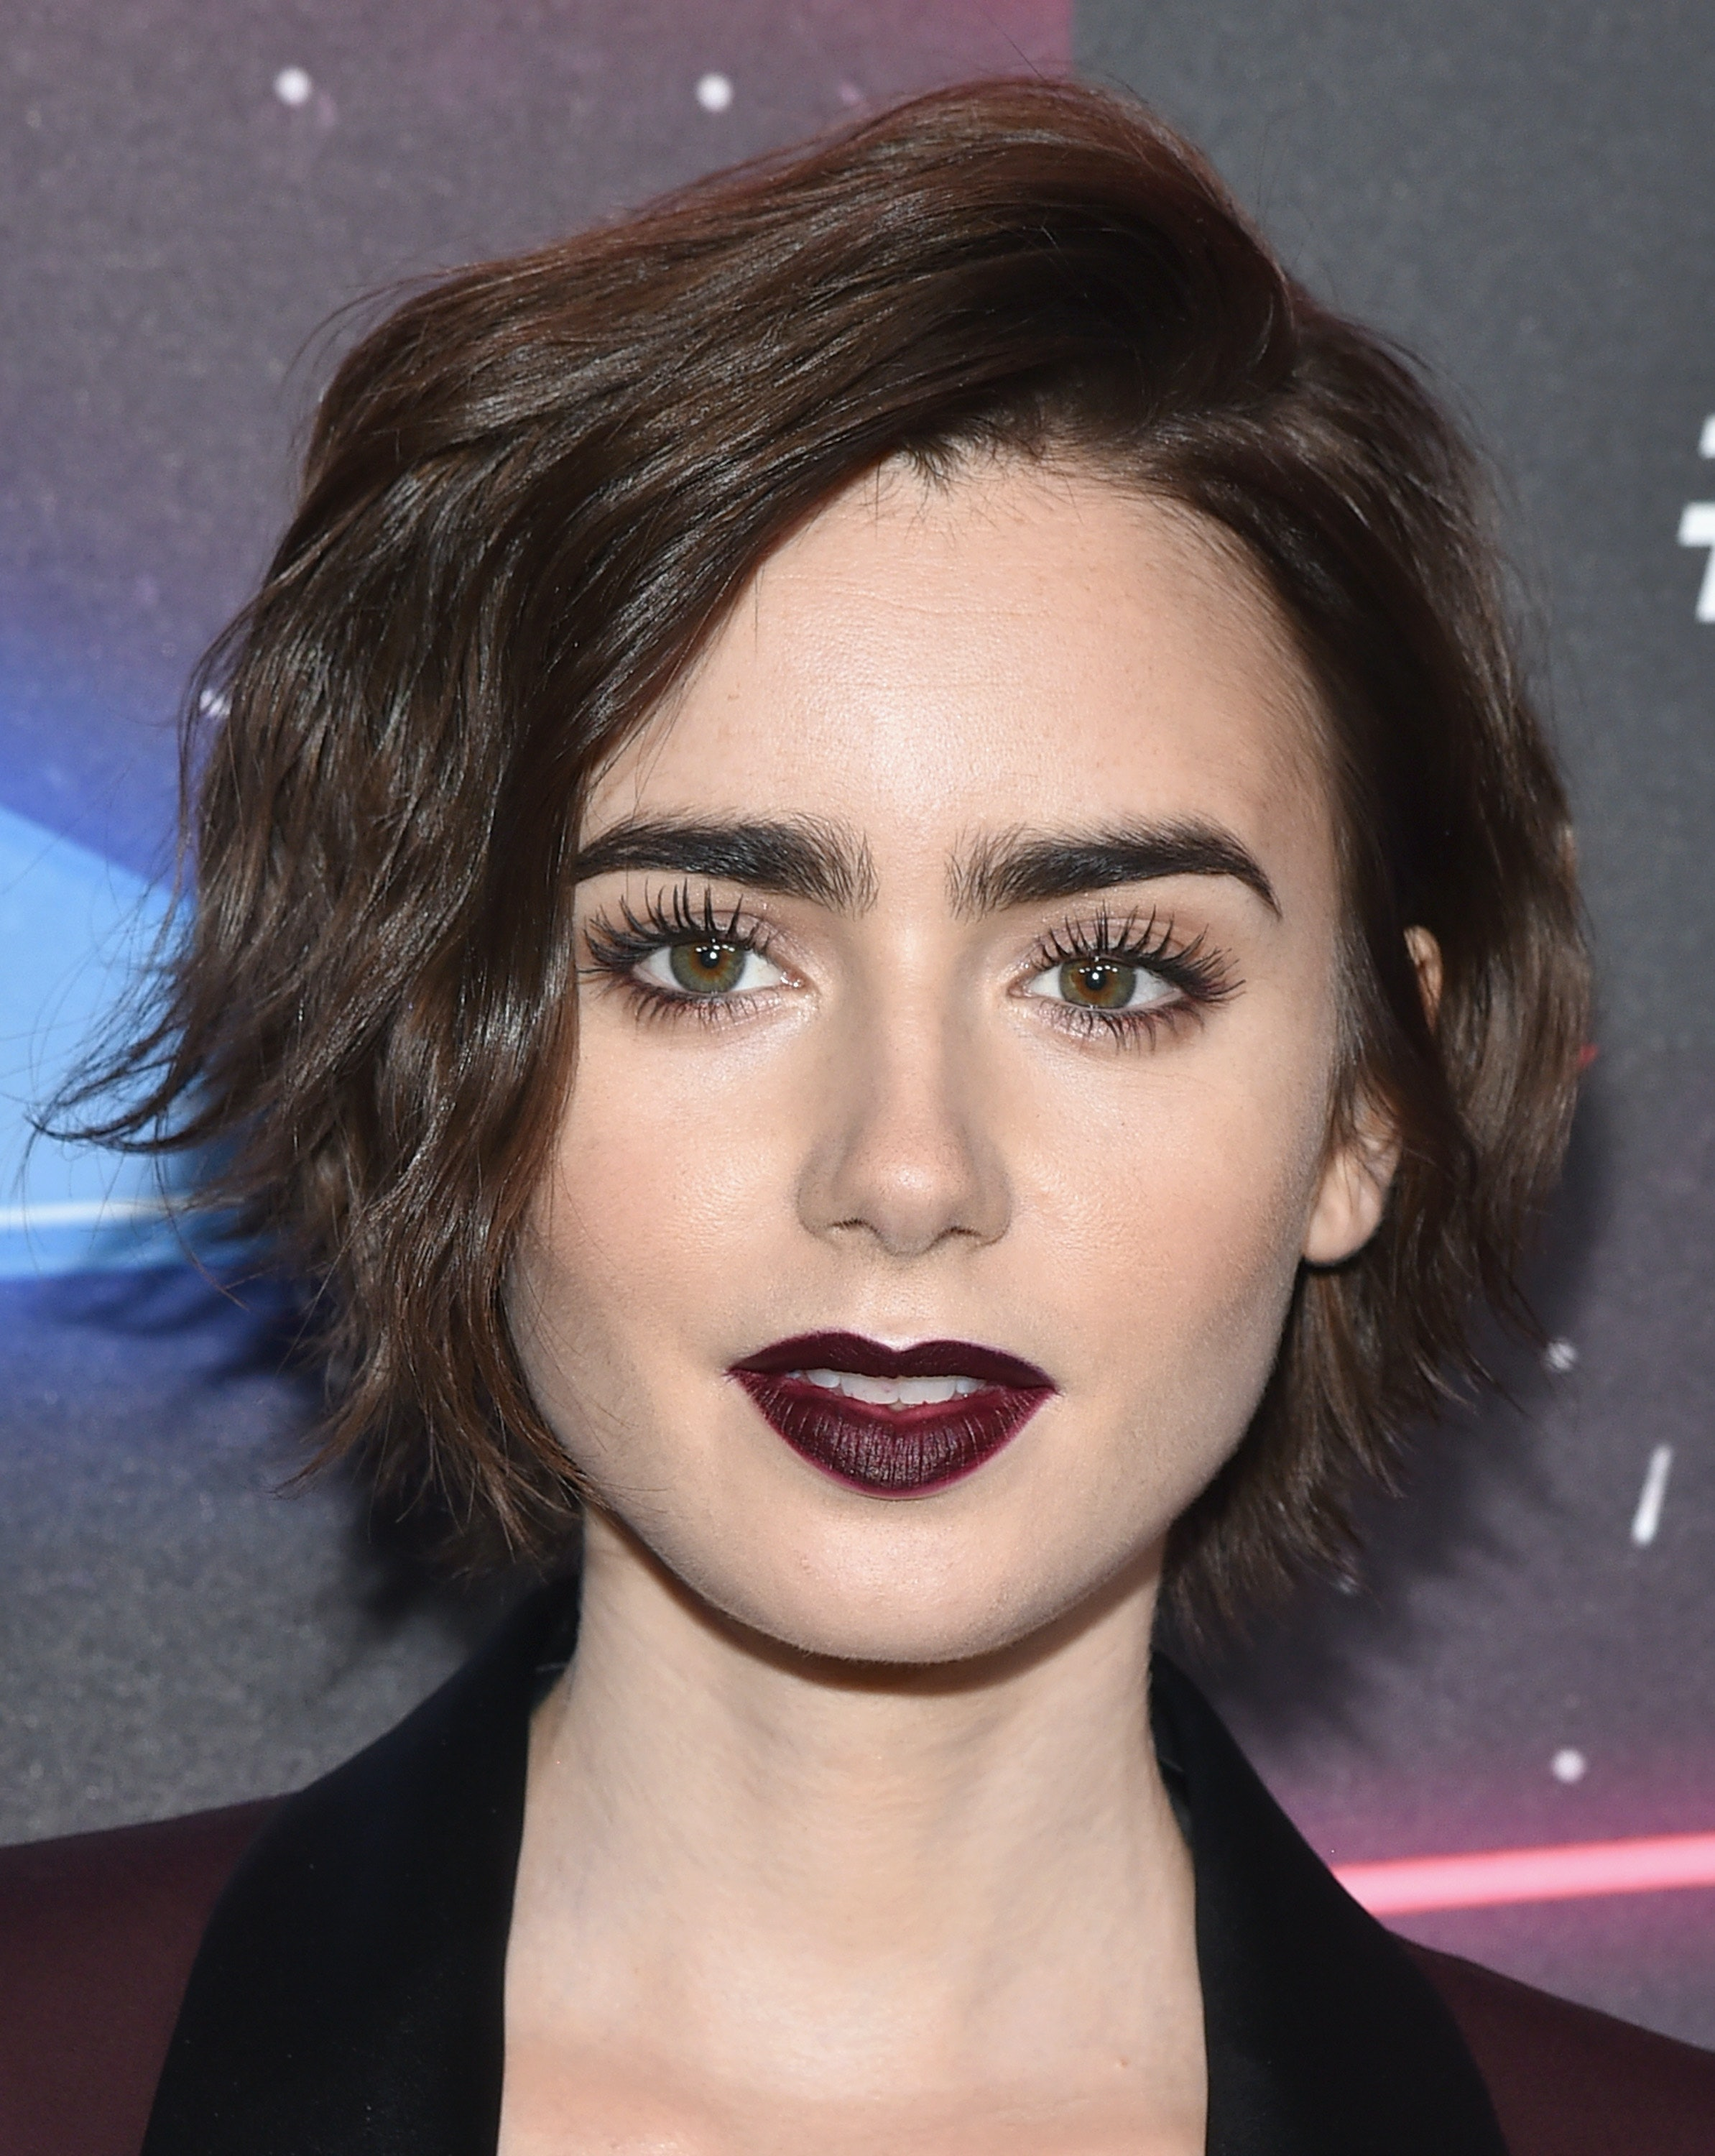 16 Celebrities With Full Brows To Get On Fleek Inspiration From Photos